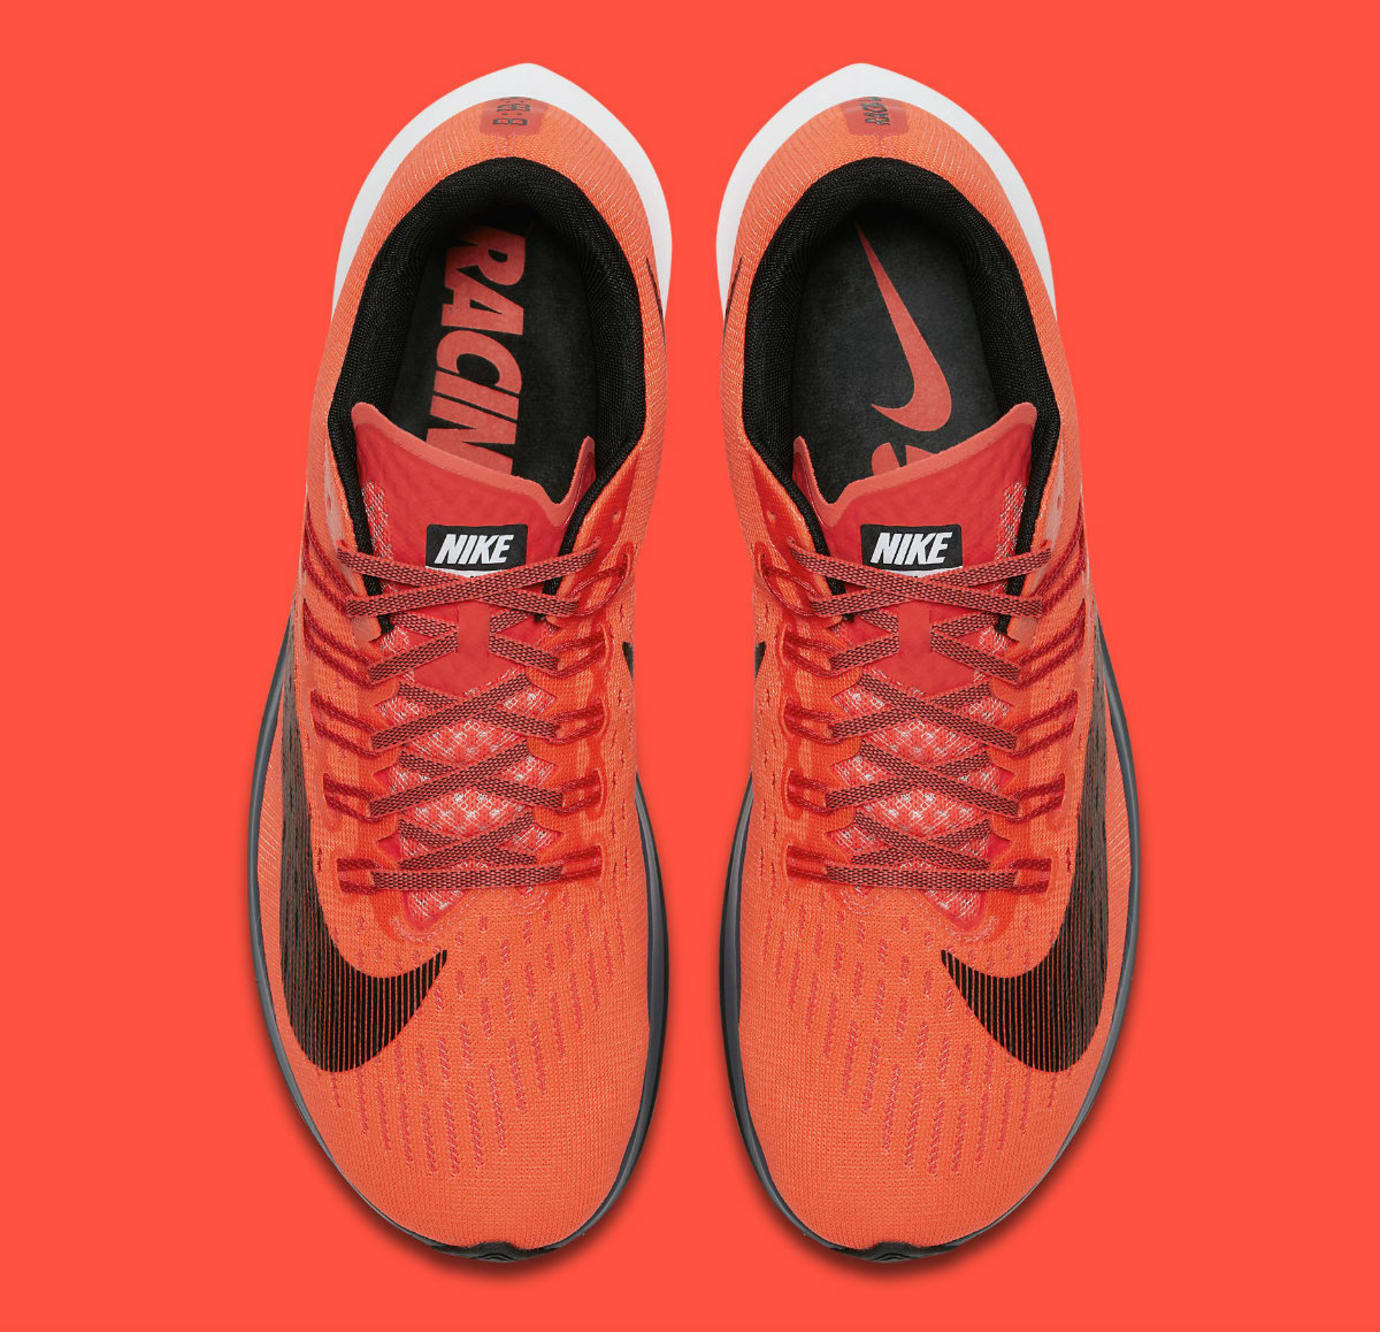 Nike Zoom Fly Bright Crimson Release Date Top 880848-614